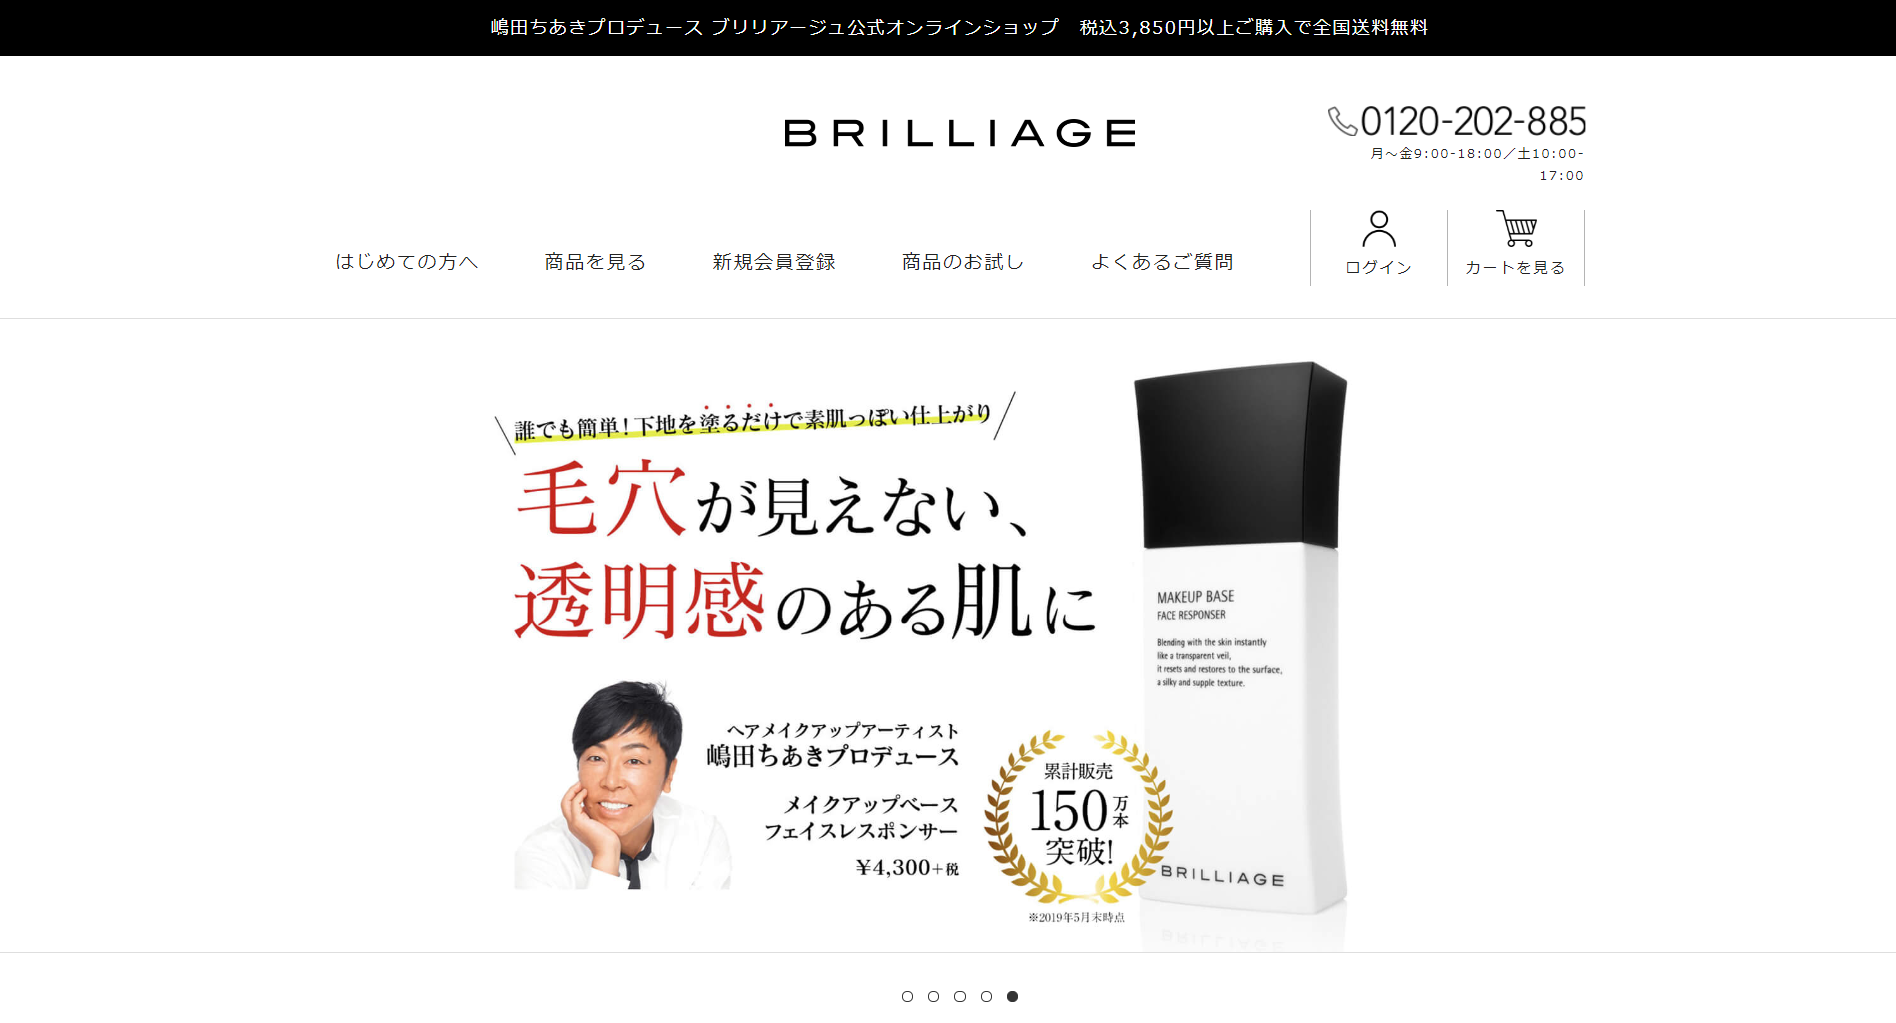 brilliage-001-1